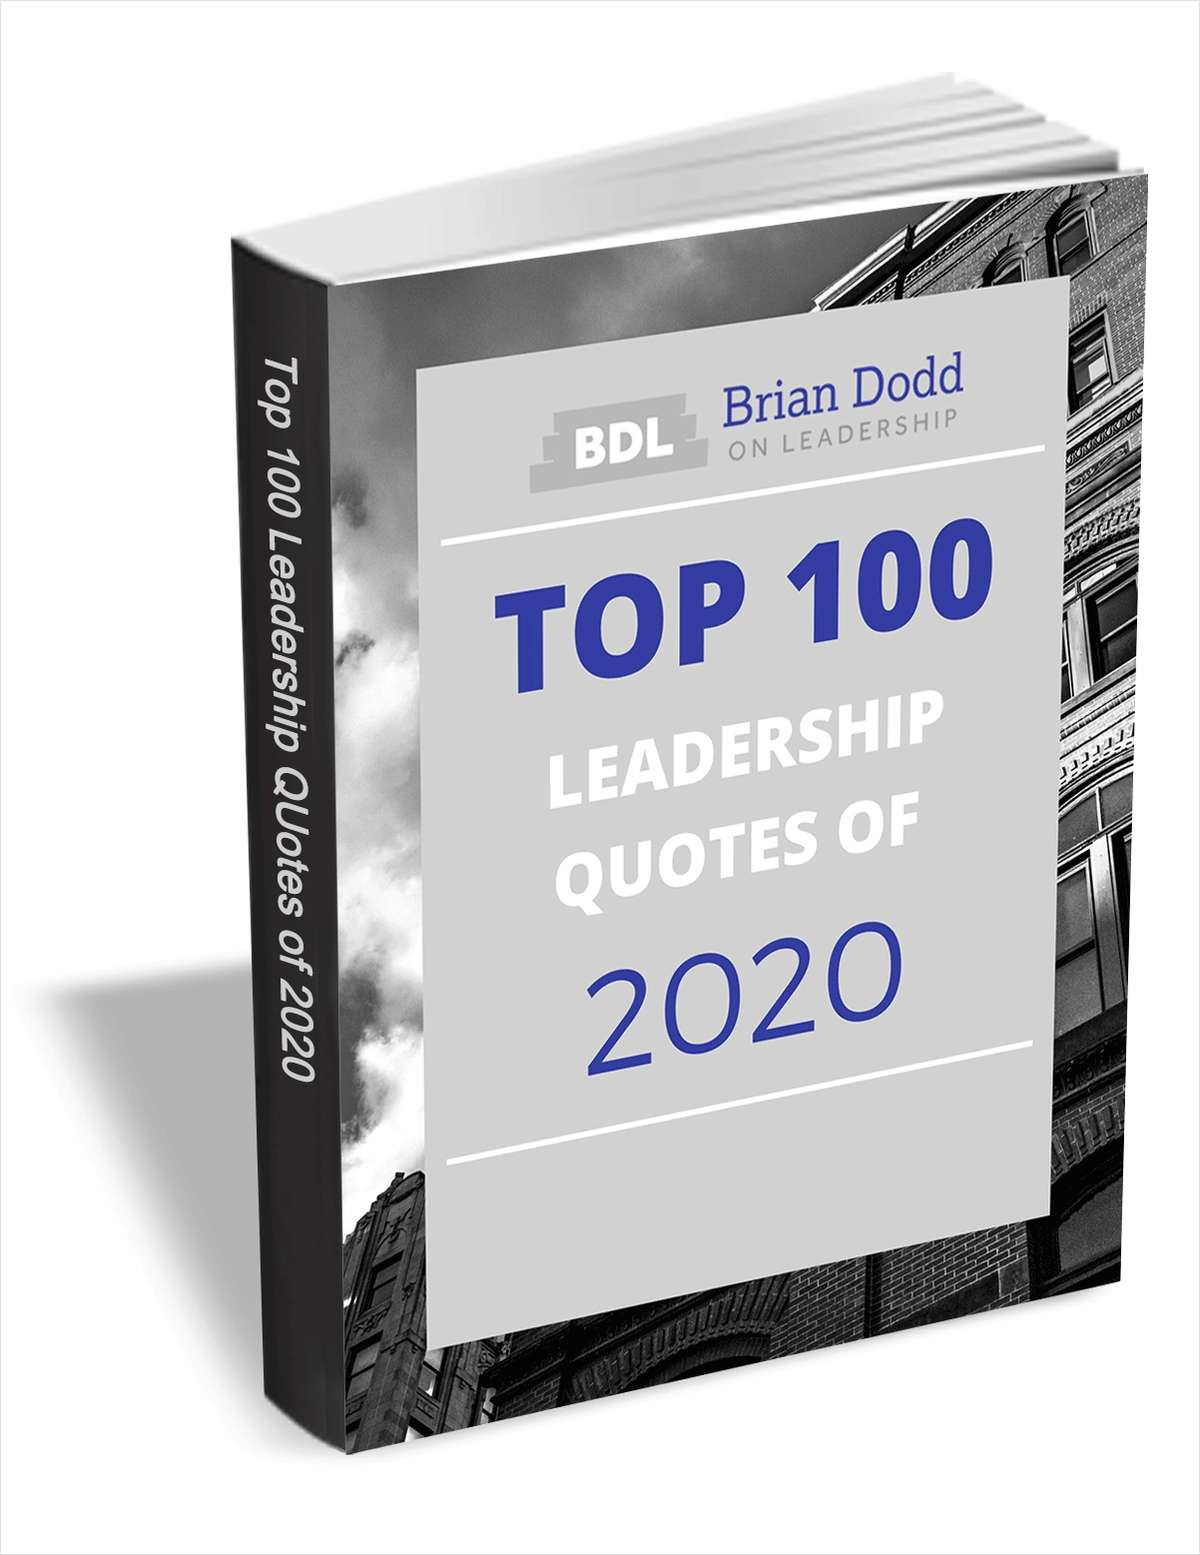 The Top 100 Leadership Quotes Of 2020